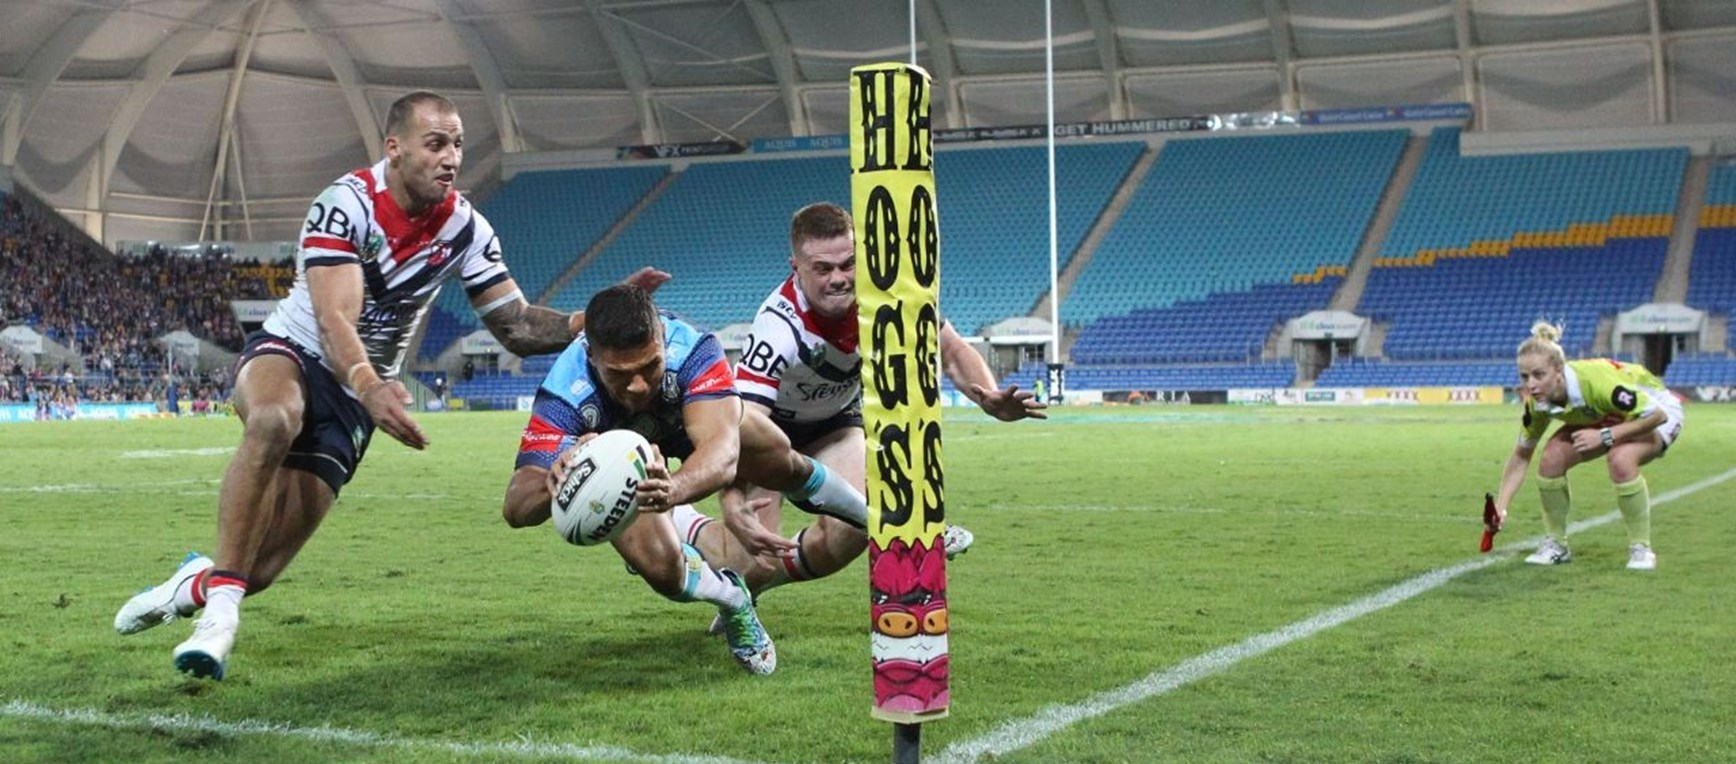 NRL GALLERY: Titans v Roosters